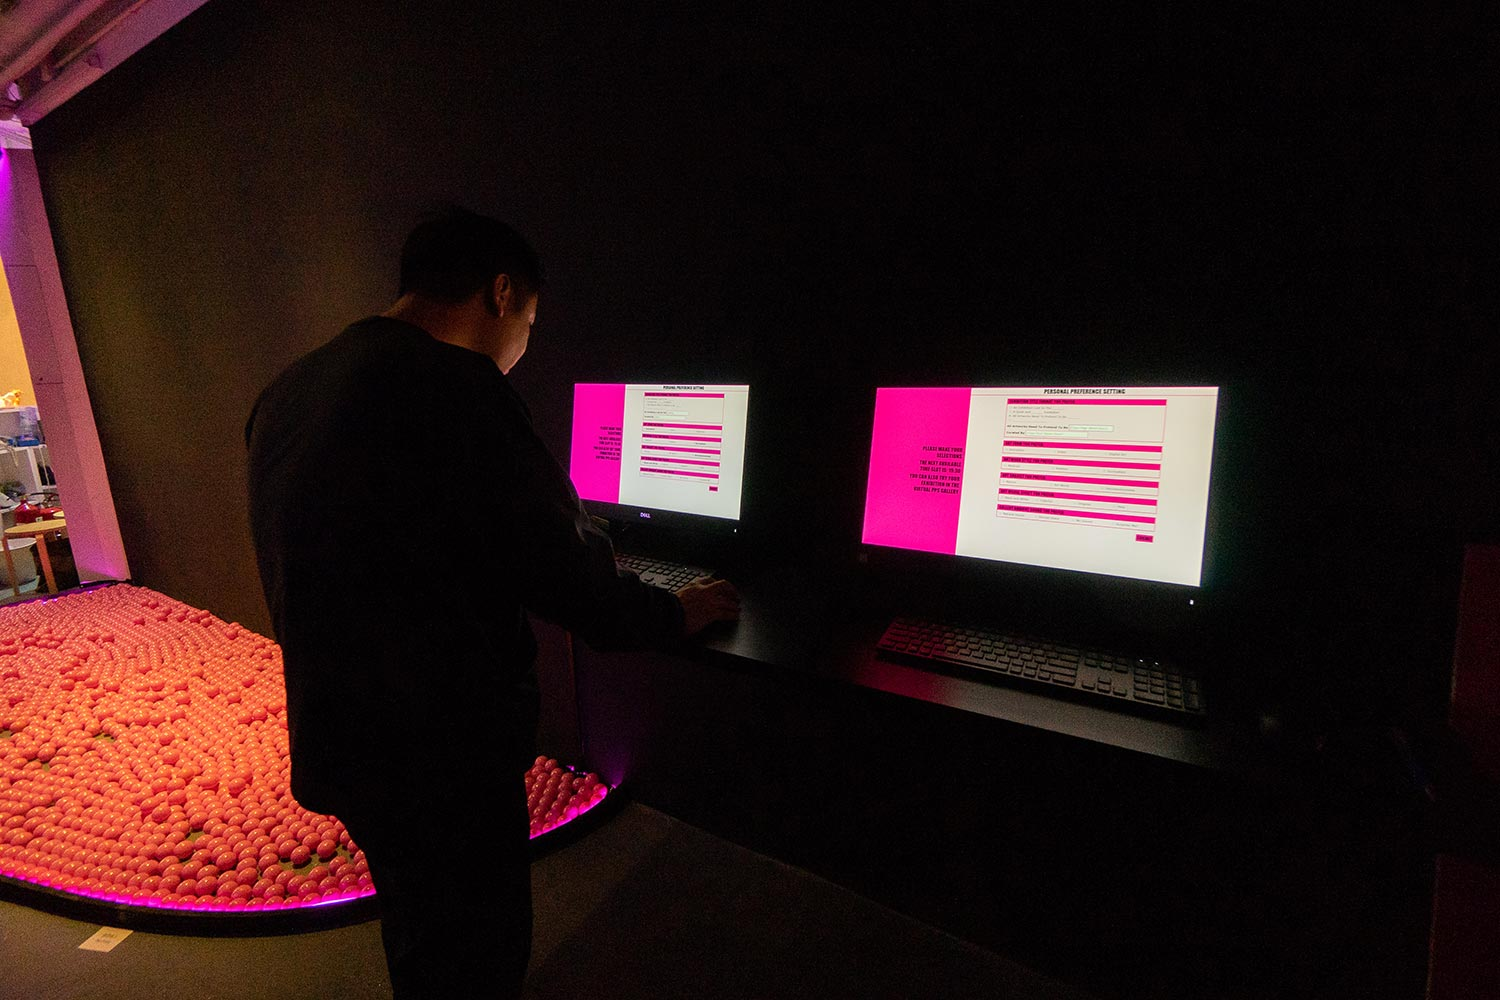 K11 visitor creating a custom exhibition using on-screen forms